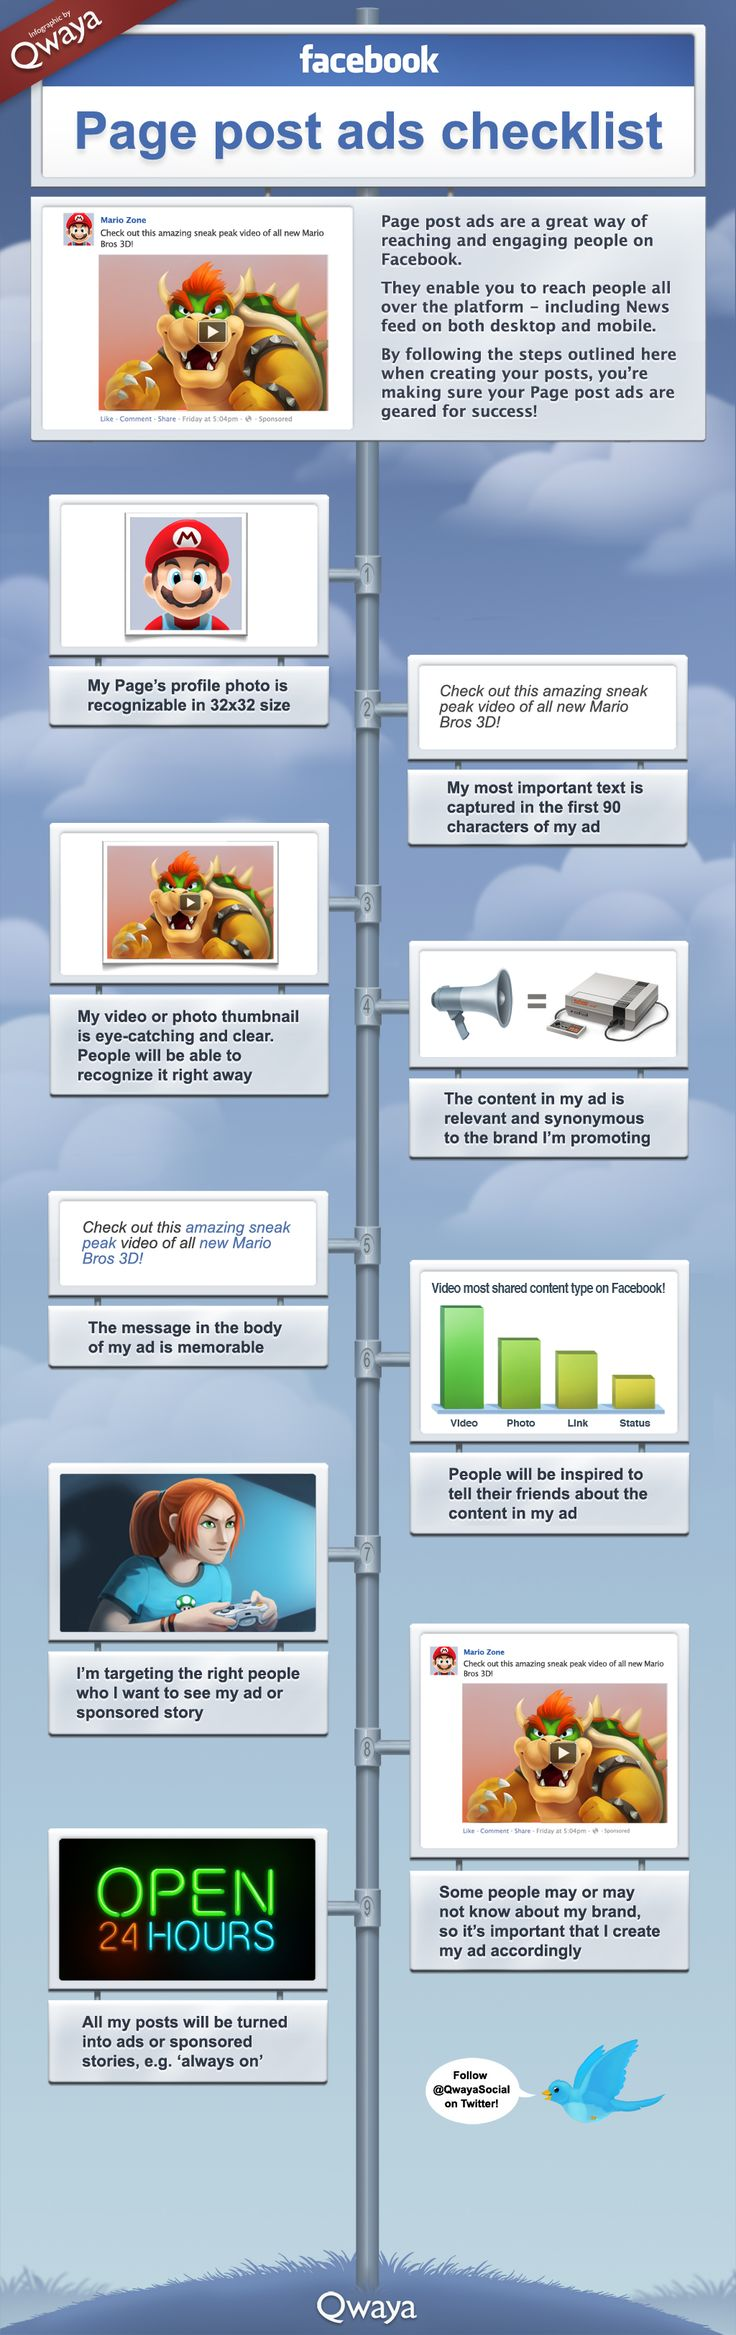 INFOGRAPHIC: Page Post Ad Checklist From Qwaya